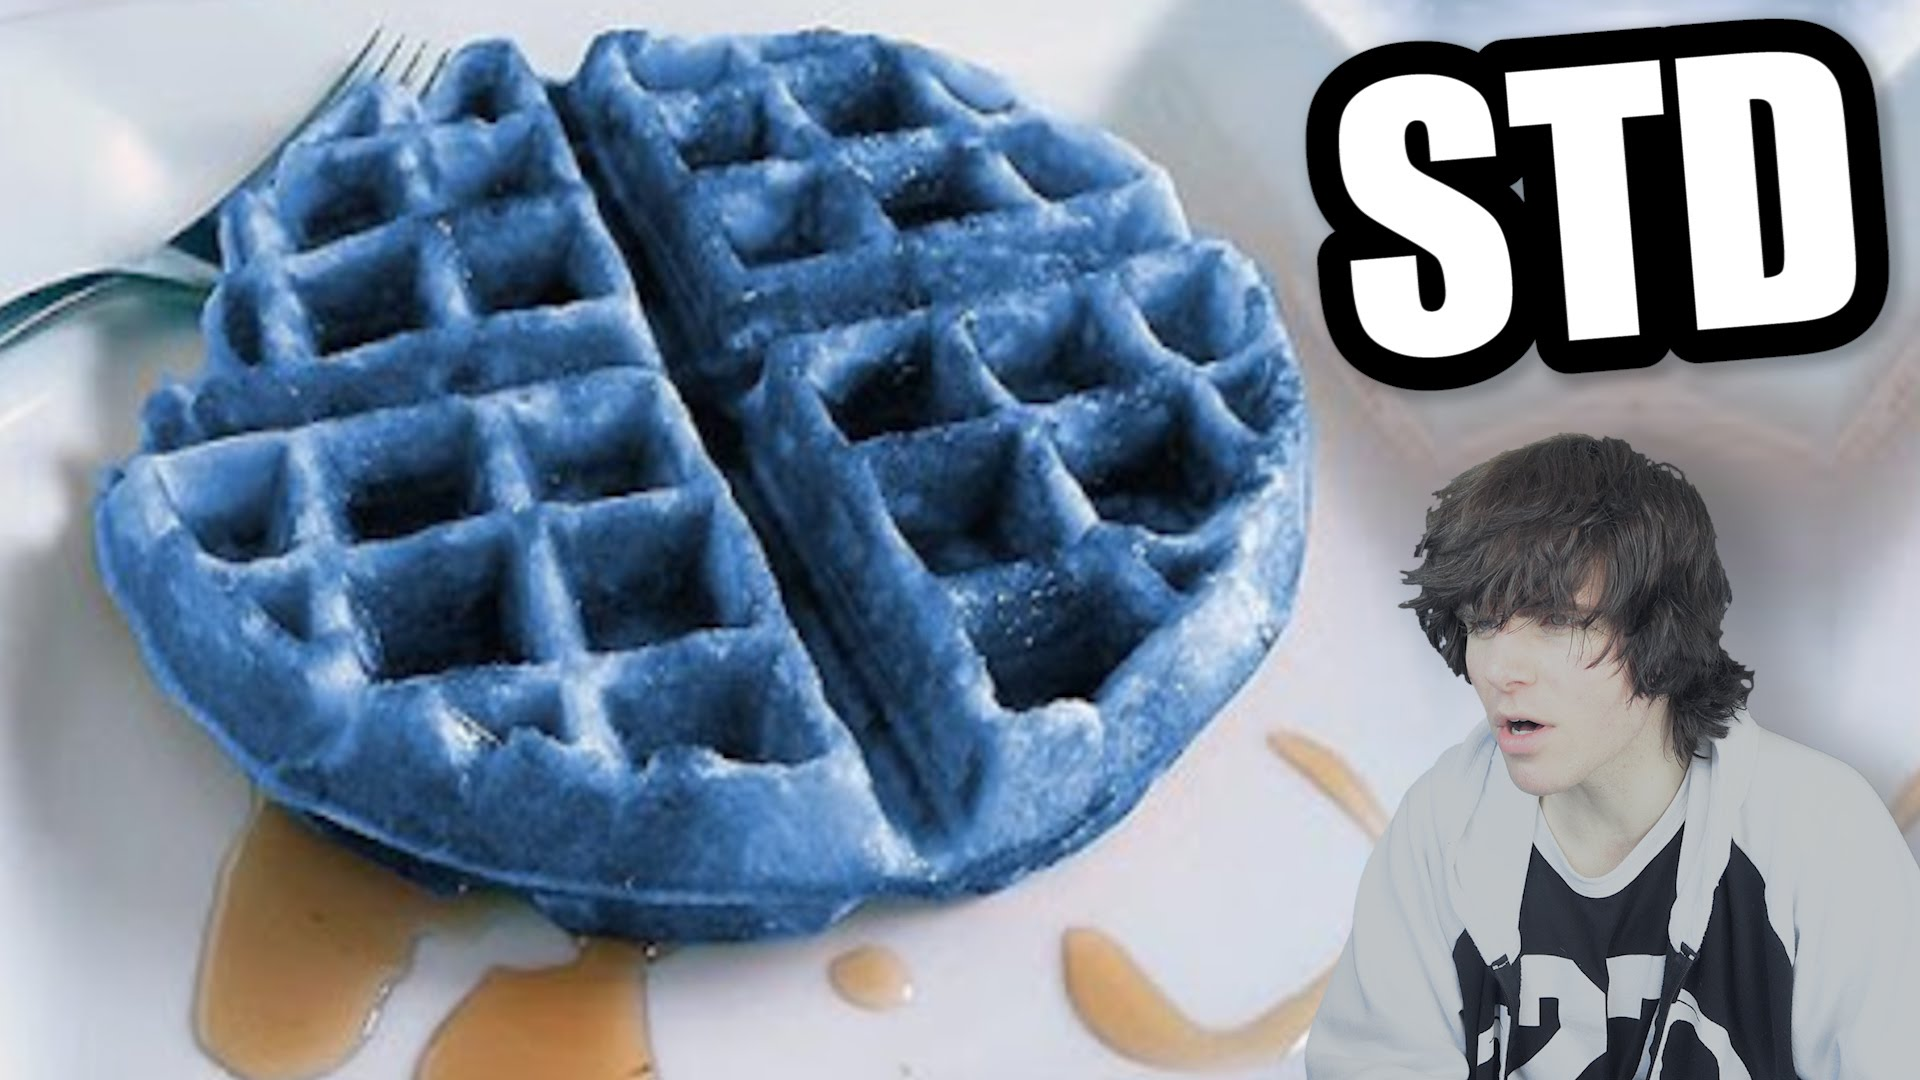 Blue Waffles Pictures - Images of Blue Waffles